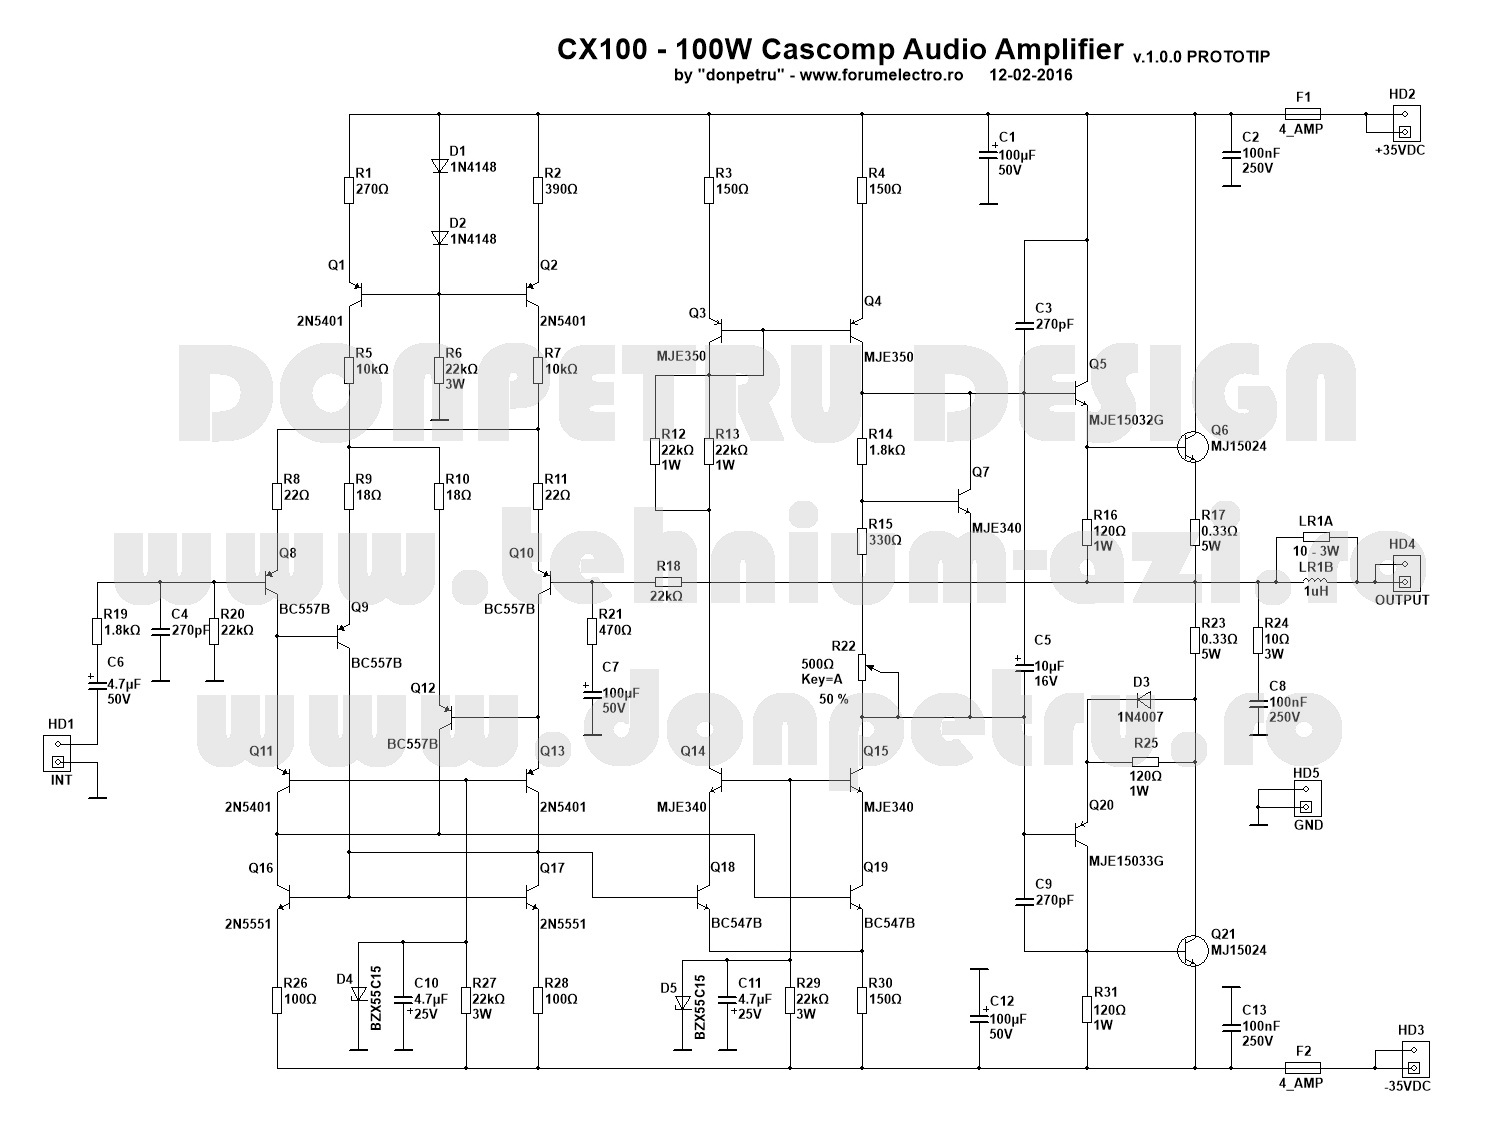 CX100 v.1.0.0 - CASCOMP HiFi Audio Amplifier (prototip).jpg